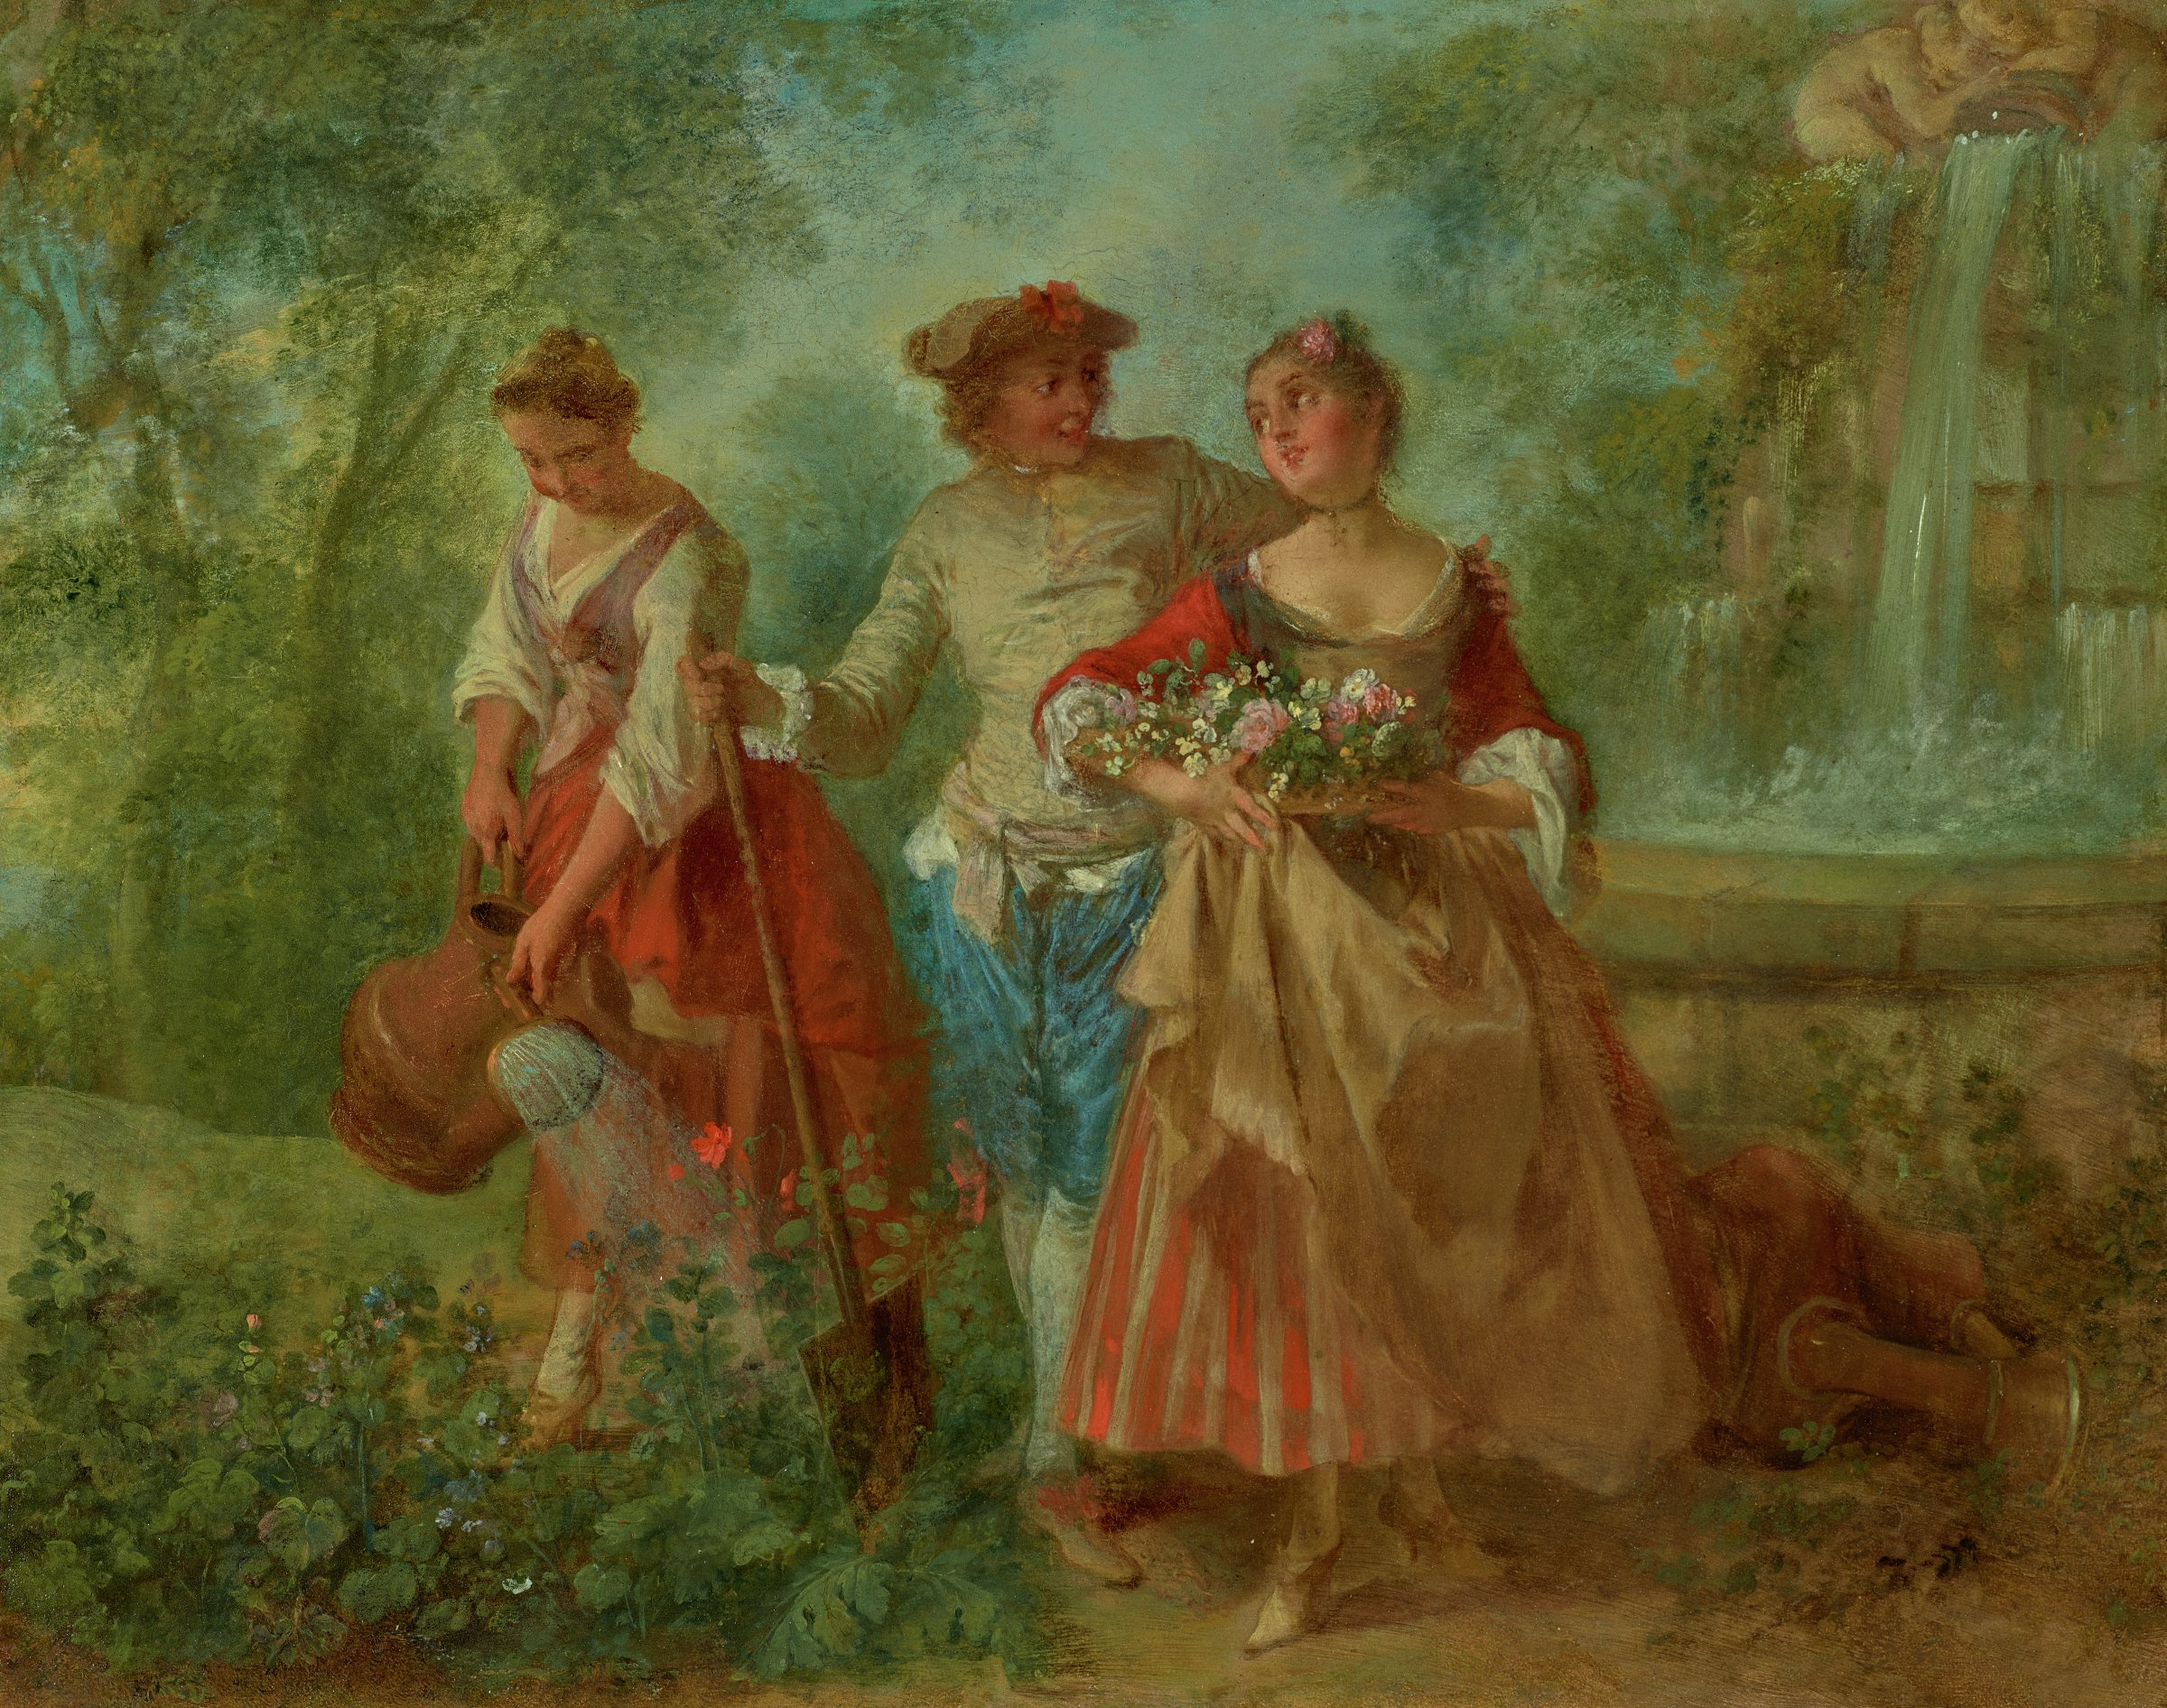 Allegory of Spring, Nicolas Lancret, oil on copper